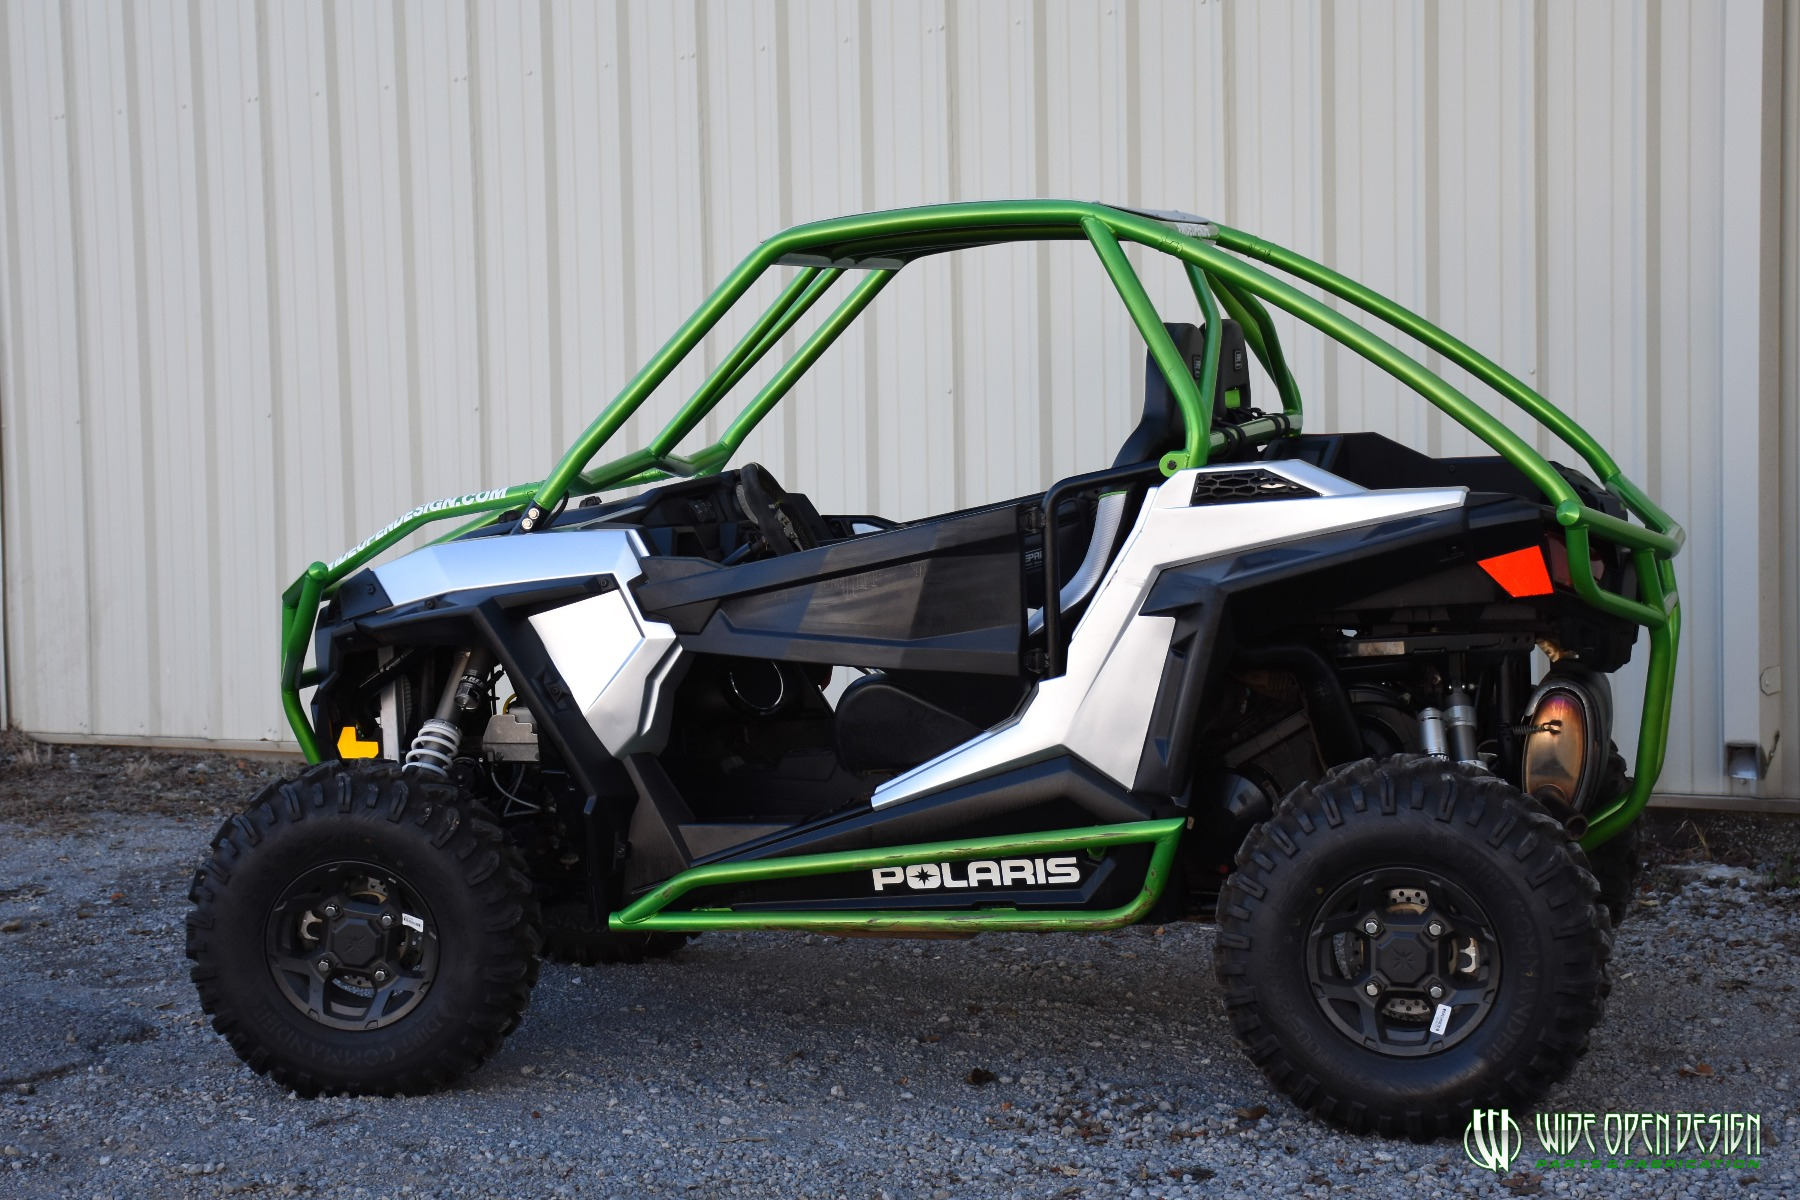 Jason's 1000s RZR with Wide Open Design Rolled Roof Cage, Front Bumper with Tie In, and Rocker Guards 21